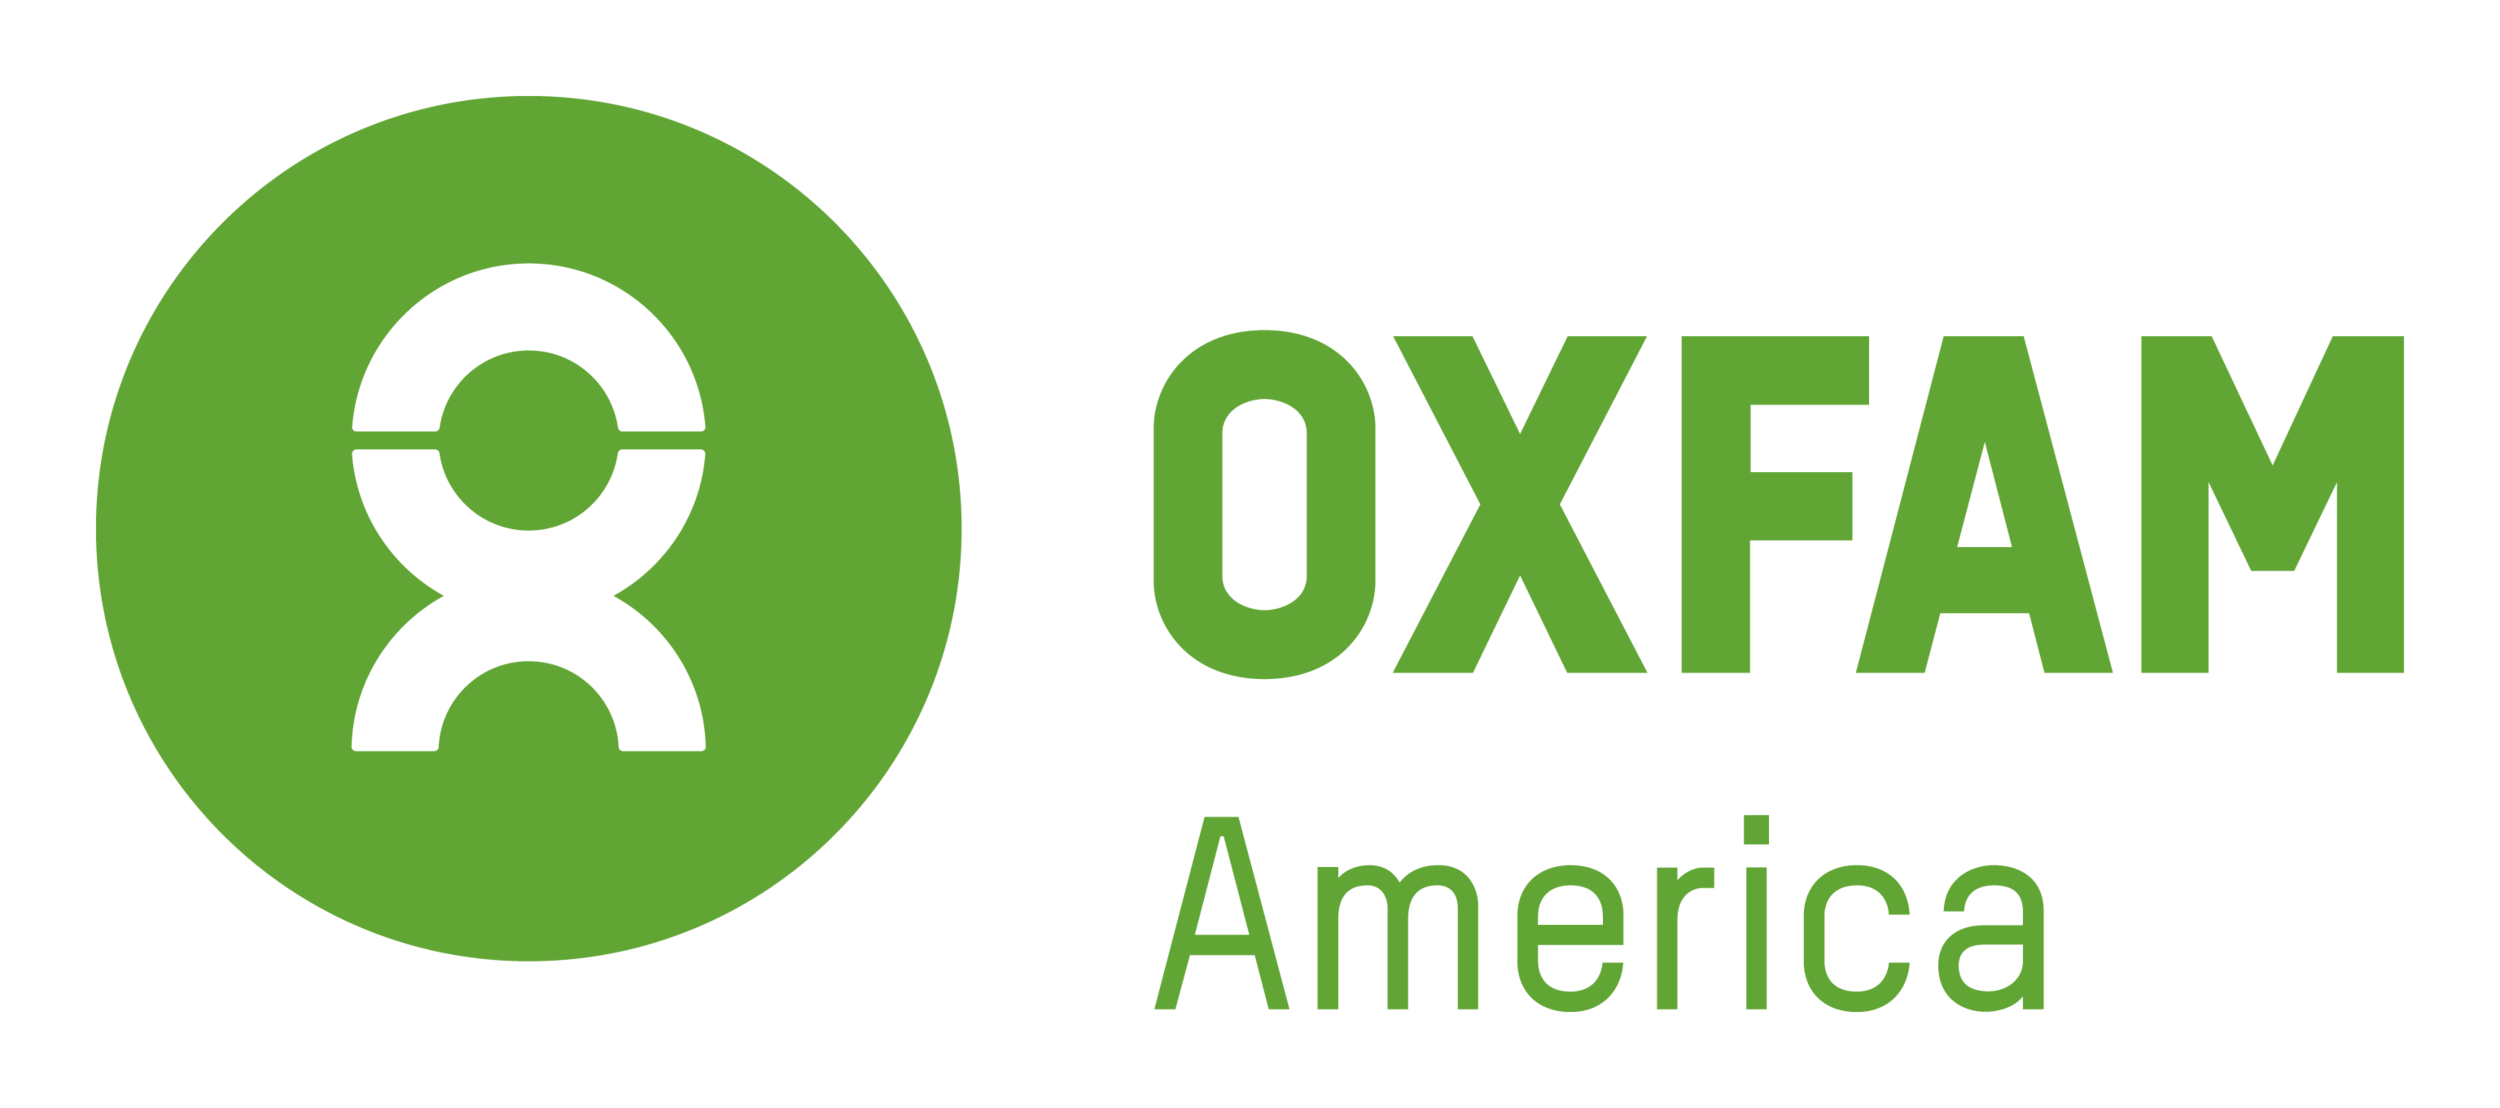 Oxfam America is a global organization working to right the wrongs of poverty, hunger, and injustice. As one of 17 members of the international Oxfam confederation, we work with people in more than 90 countries to create lasting solutions. Oxfam saves lives, develops long-term solutions to poverty, and campaigns for social change.